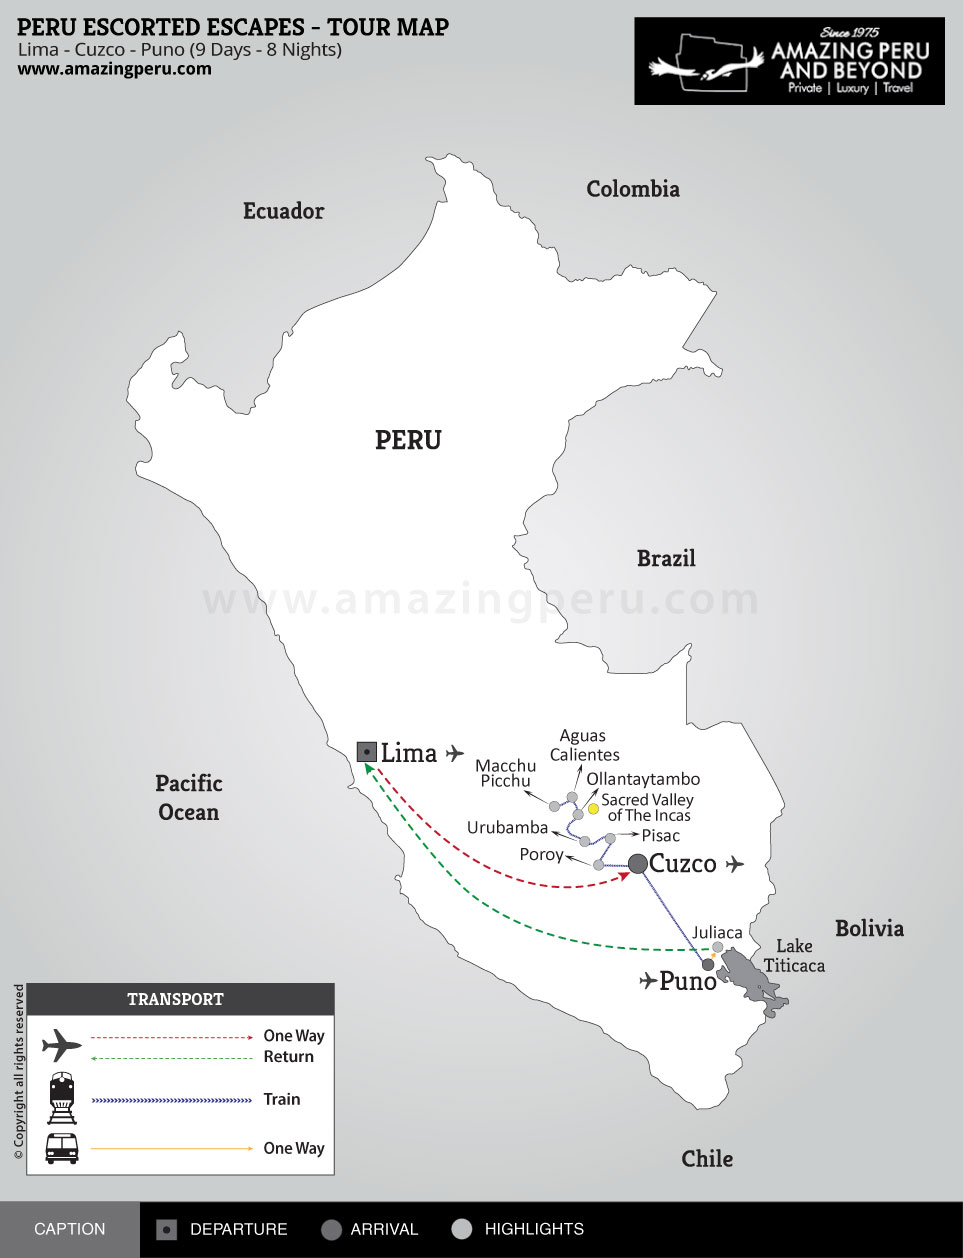 Peru Escorted Escapes Tour 1 - 9 days / 8 nights.